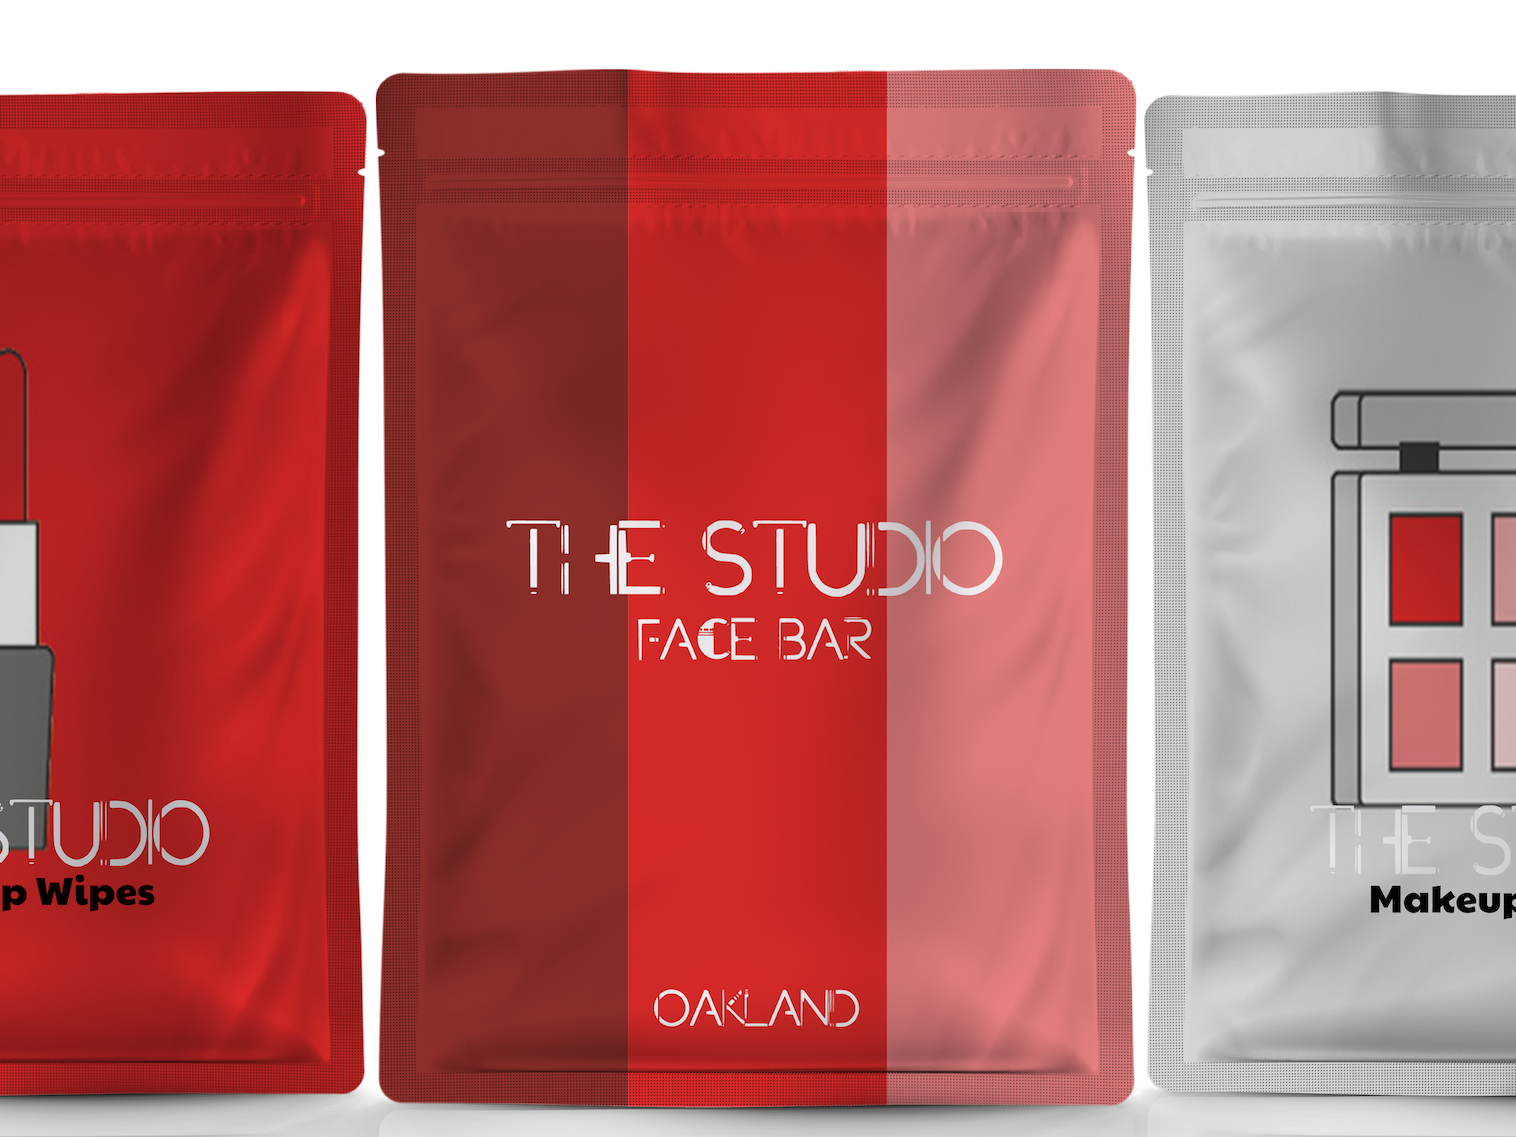 The Studio Face Bar Pouches bright colors package mockup graphic design branding red packaging package design